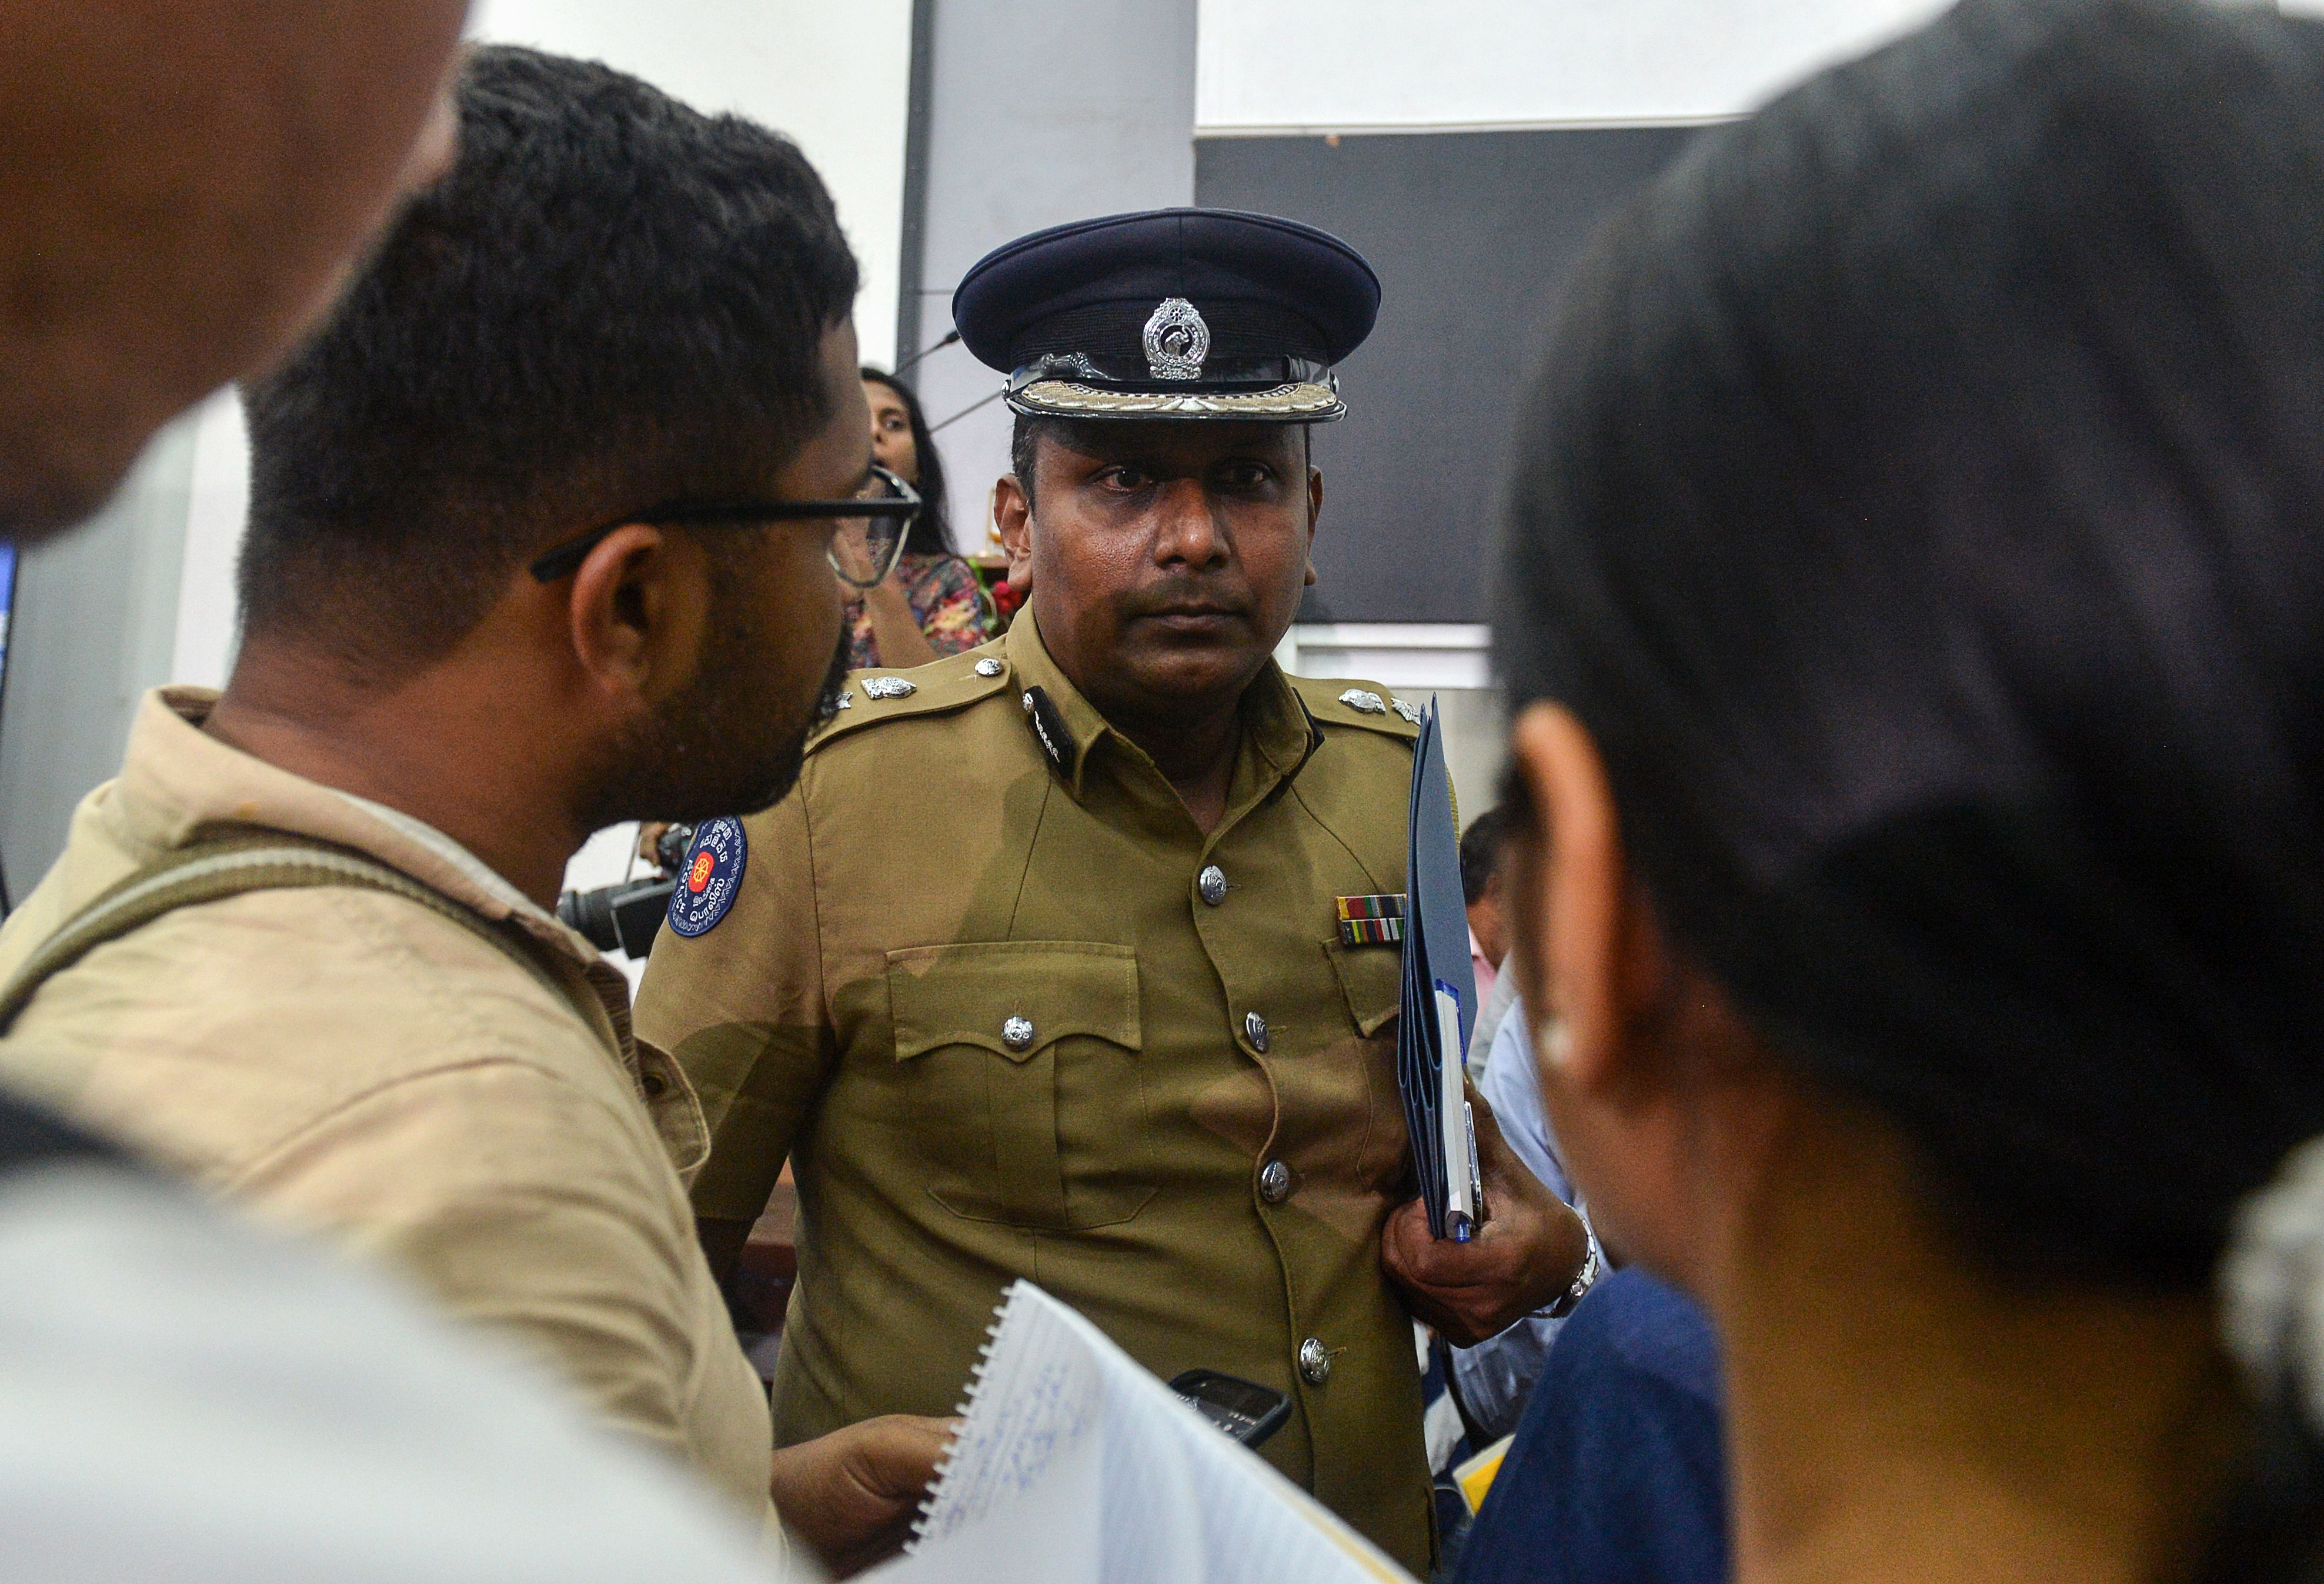 Sri Lanka's police spokesman Ruwan Gunasekera (C) said most of the suspects were arrested in the capital, Colombo